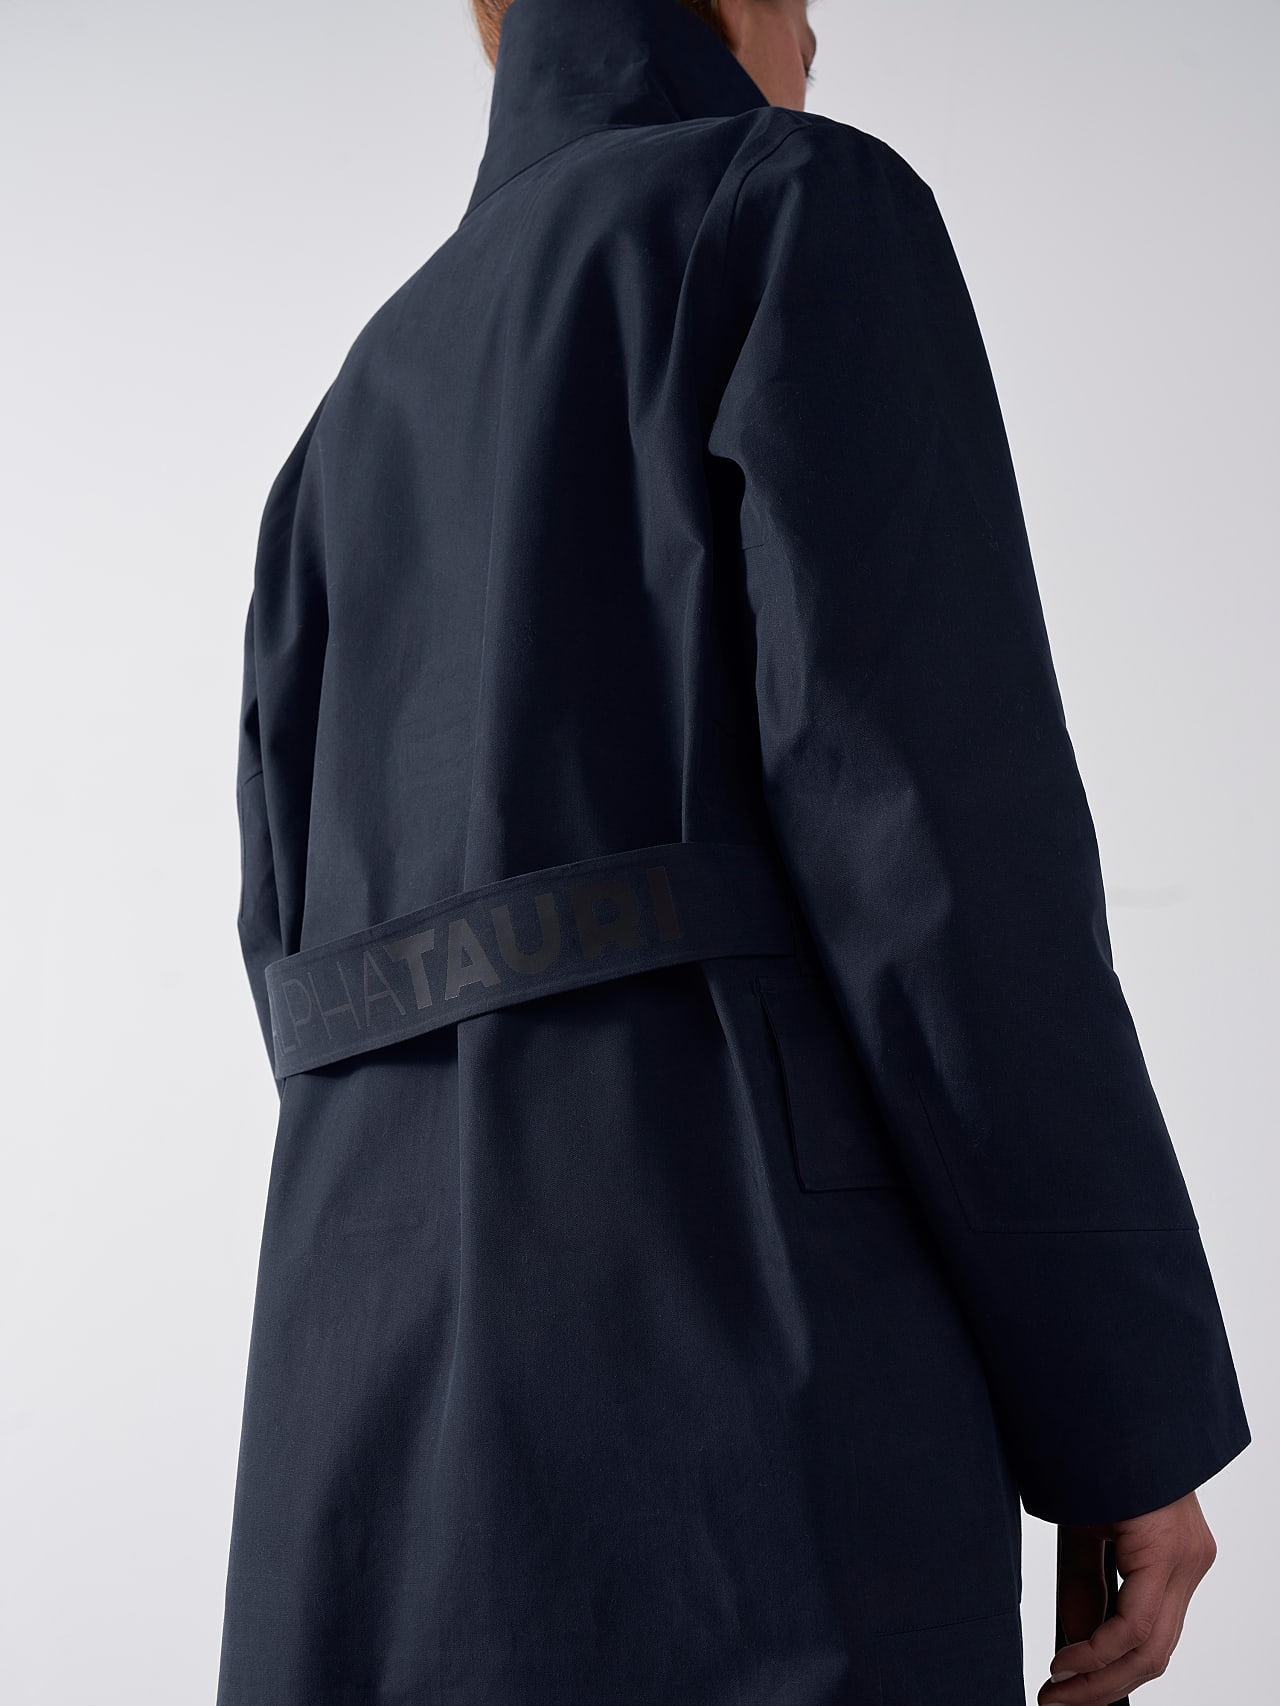 OZENZ V1.Y5.01 Packable Waterproof Trench navy scene7.view.8.name Alpha Tauri